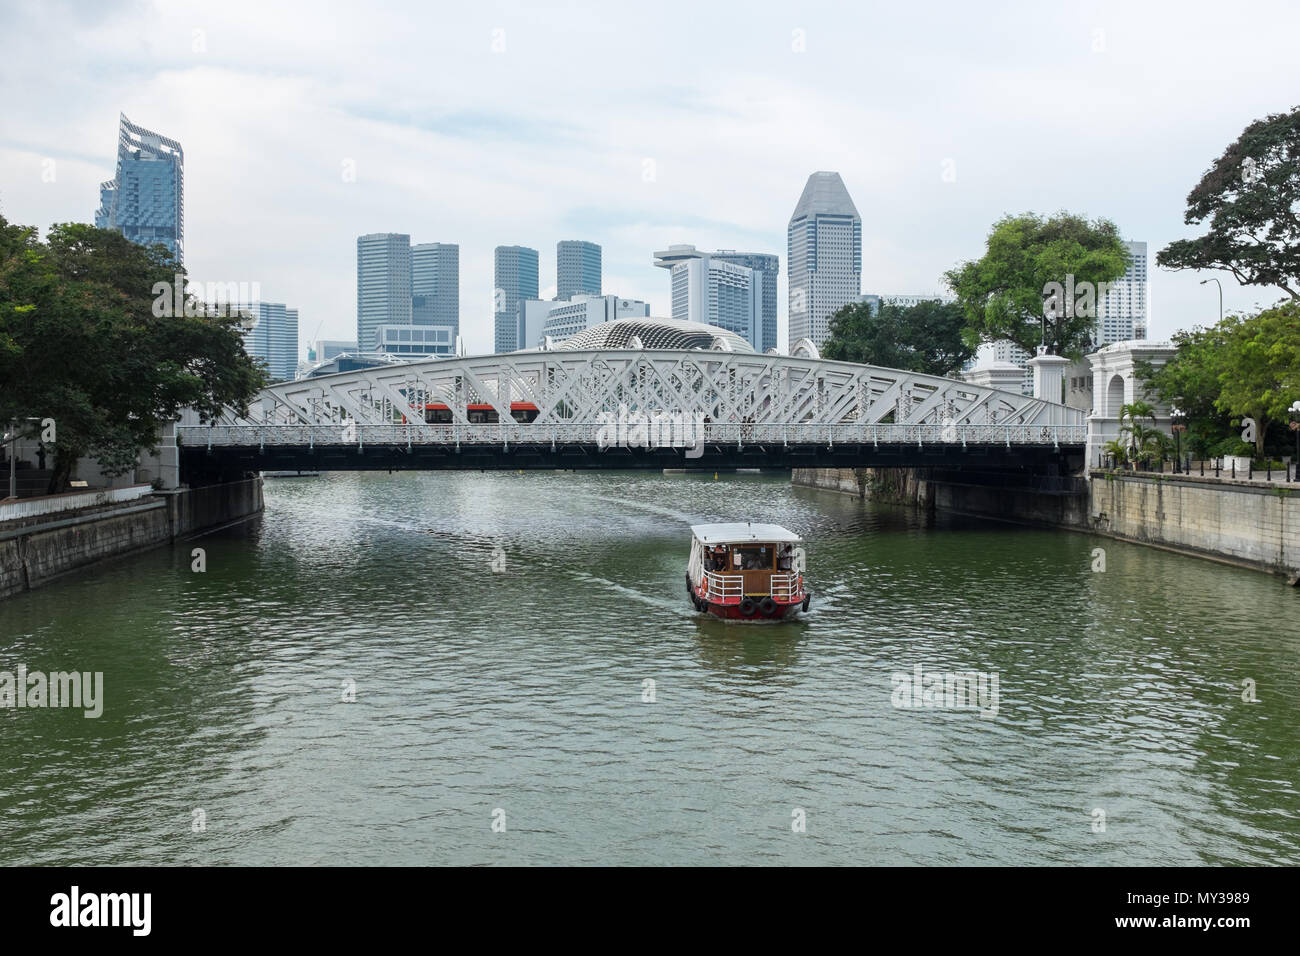 Tourists on Bumboat passing under Anderson Bridge on the Singapore River in Singapore - Stock Image